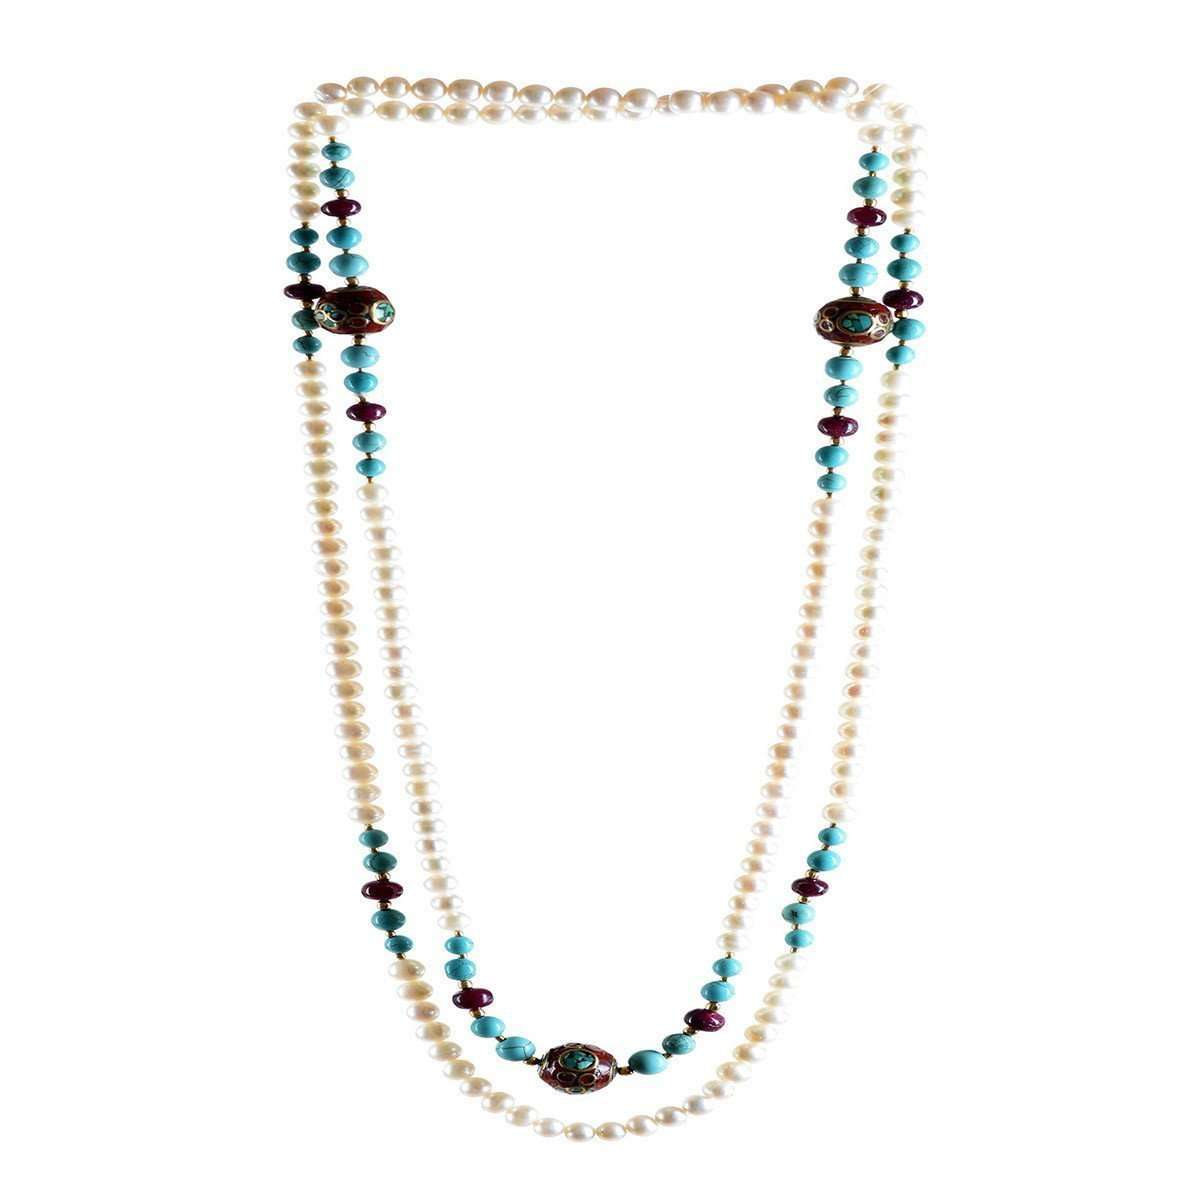 Magnifique Pearl Necklace with Rubies, Turquoise and Beads-M's Gems by Mamta Valrani-JewelStreet US